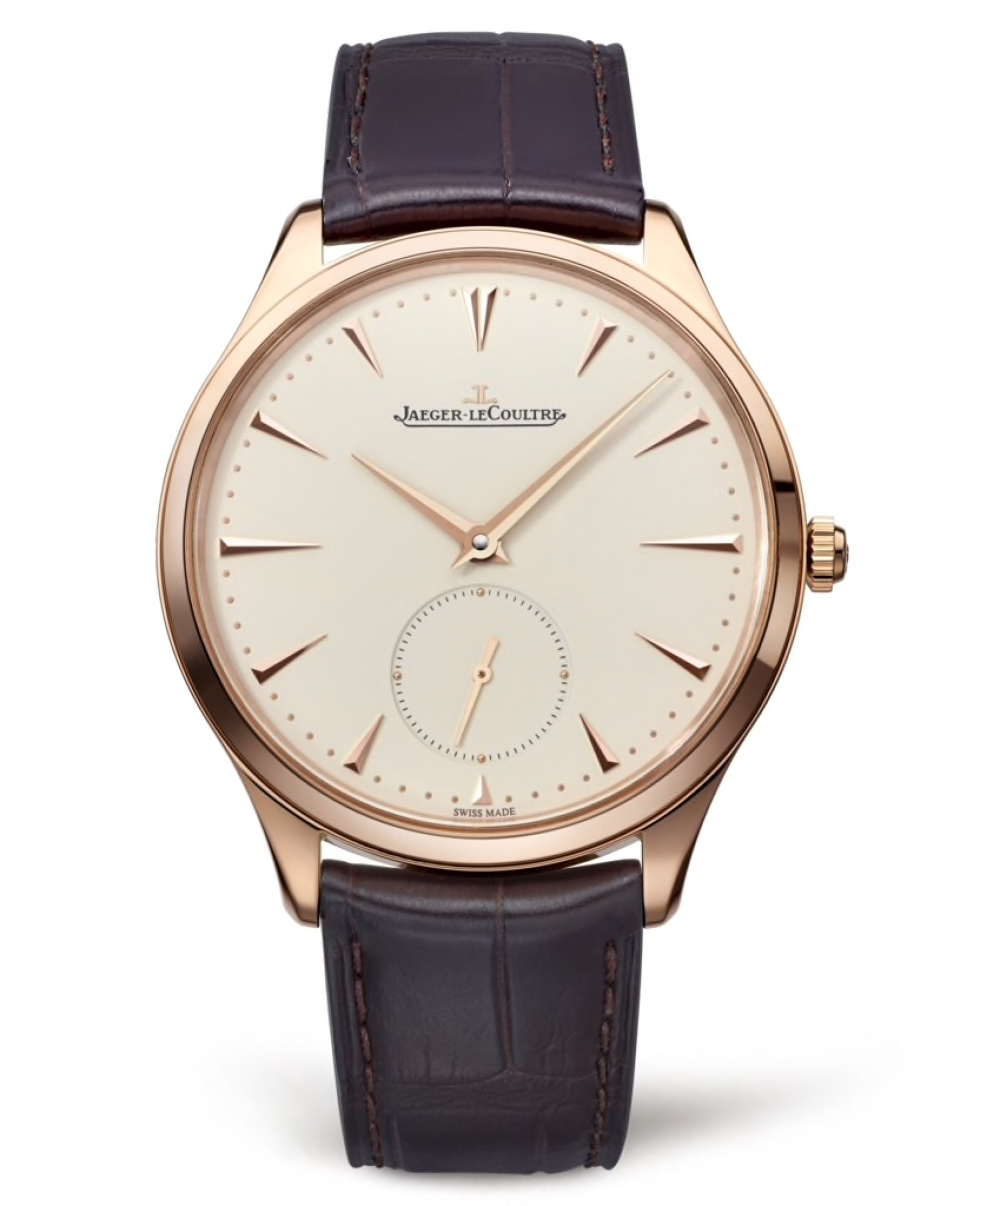 Jaeger-leCoultre-Master-Ultra-Thin-Small-Second-Hall-of-Time-Q1272510